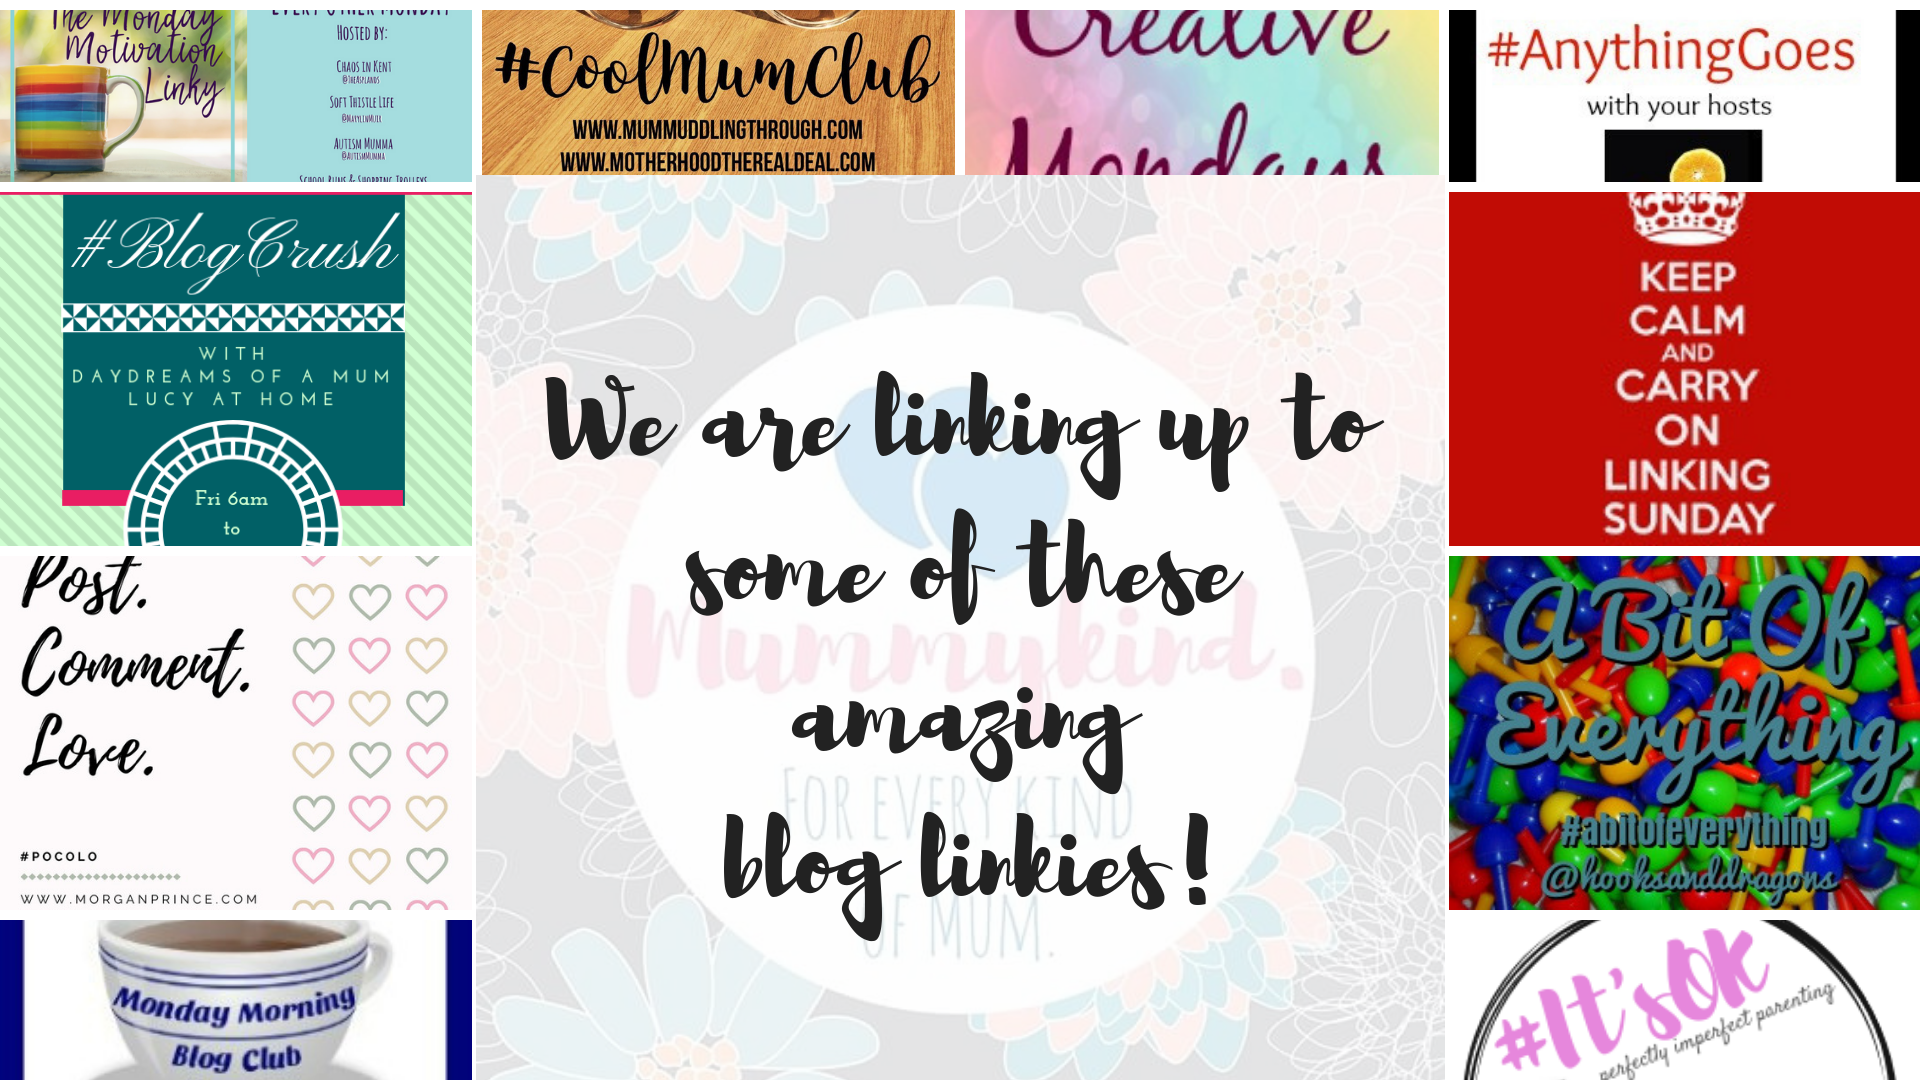 We are linking up to some of these amazing blog linkies!